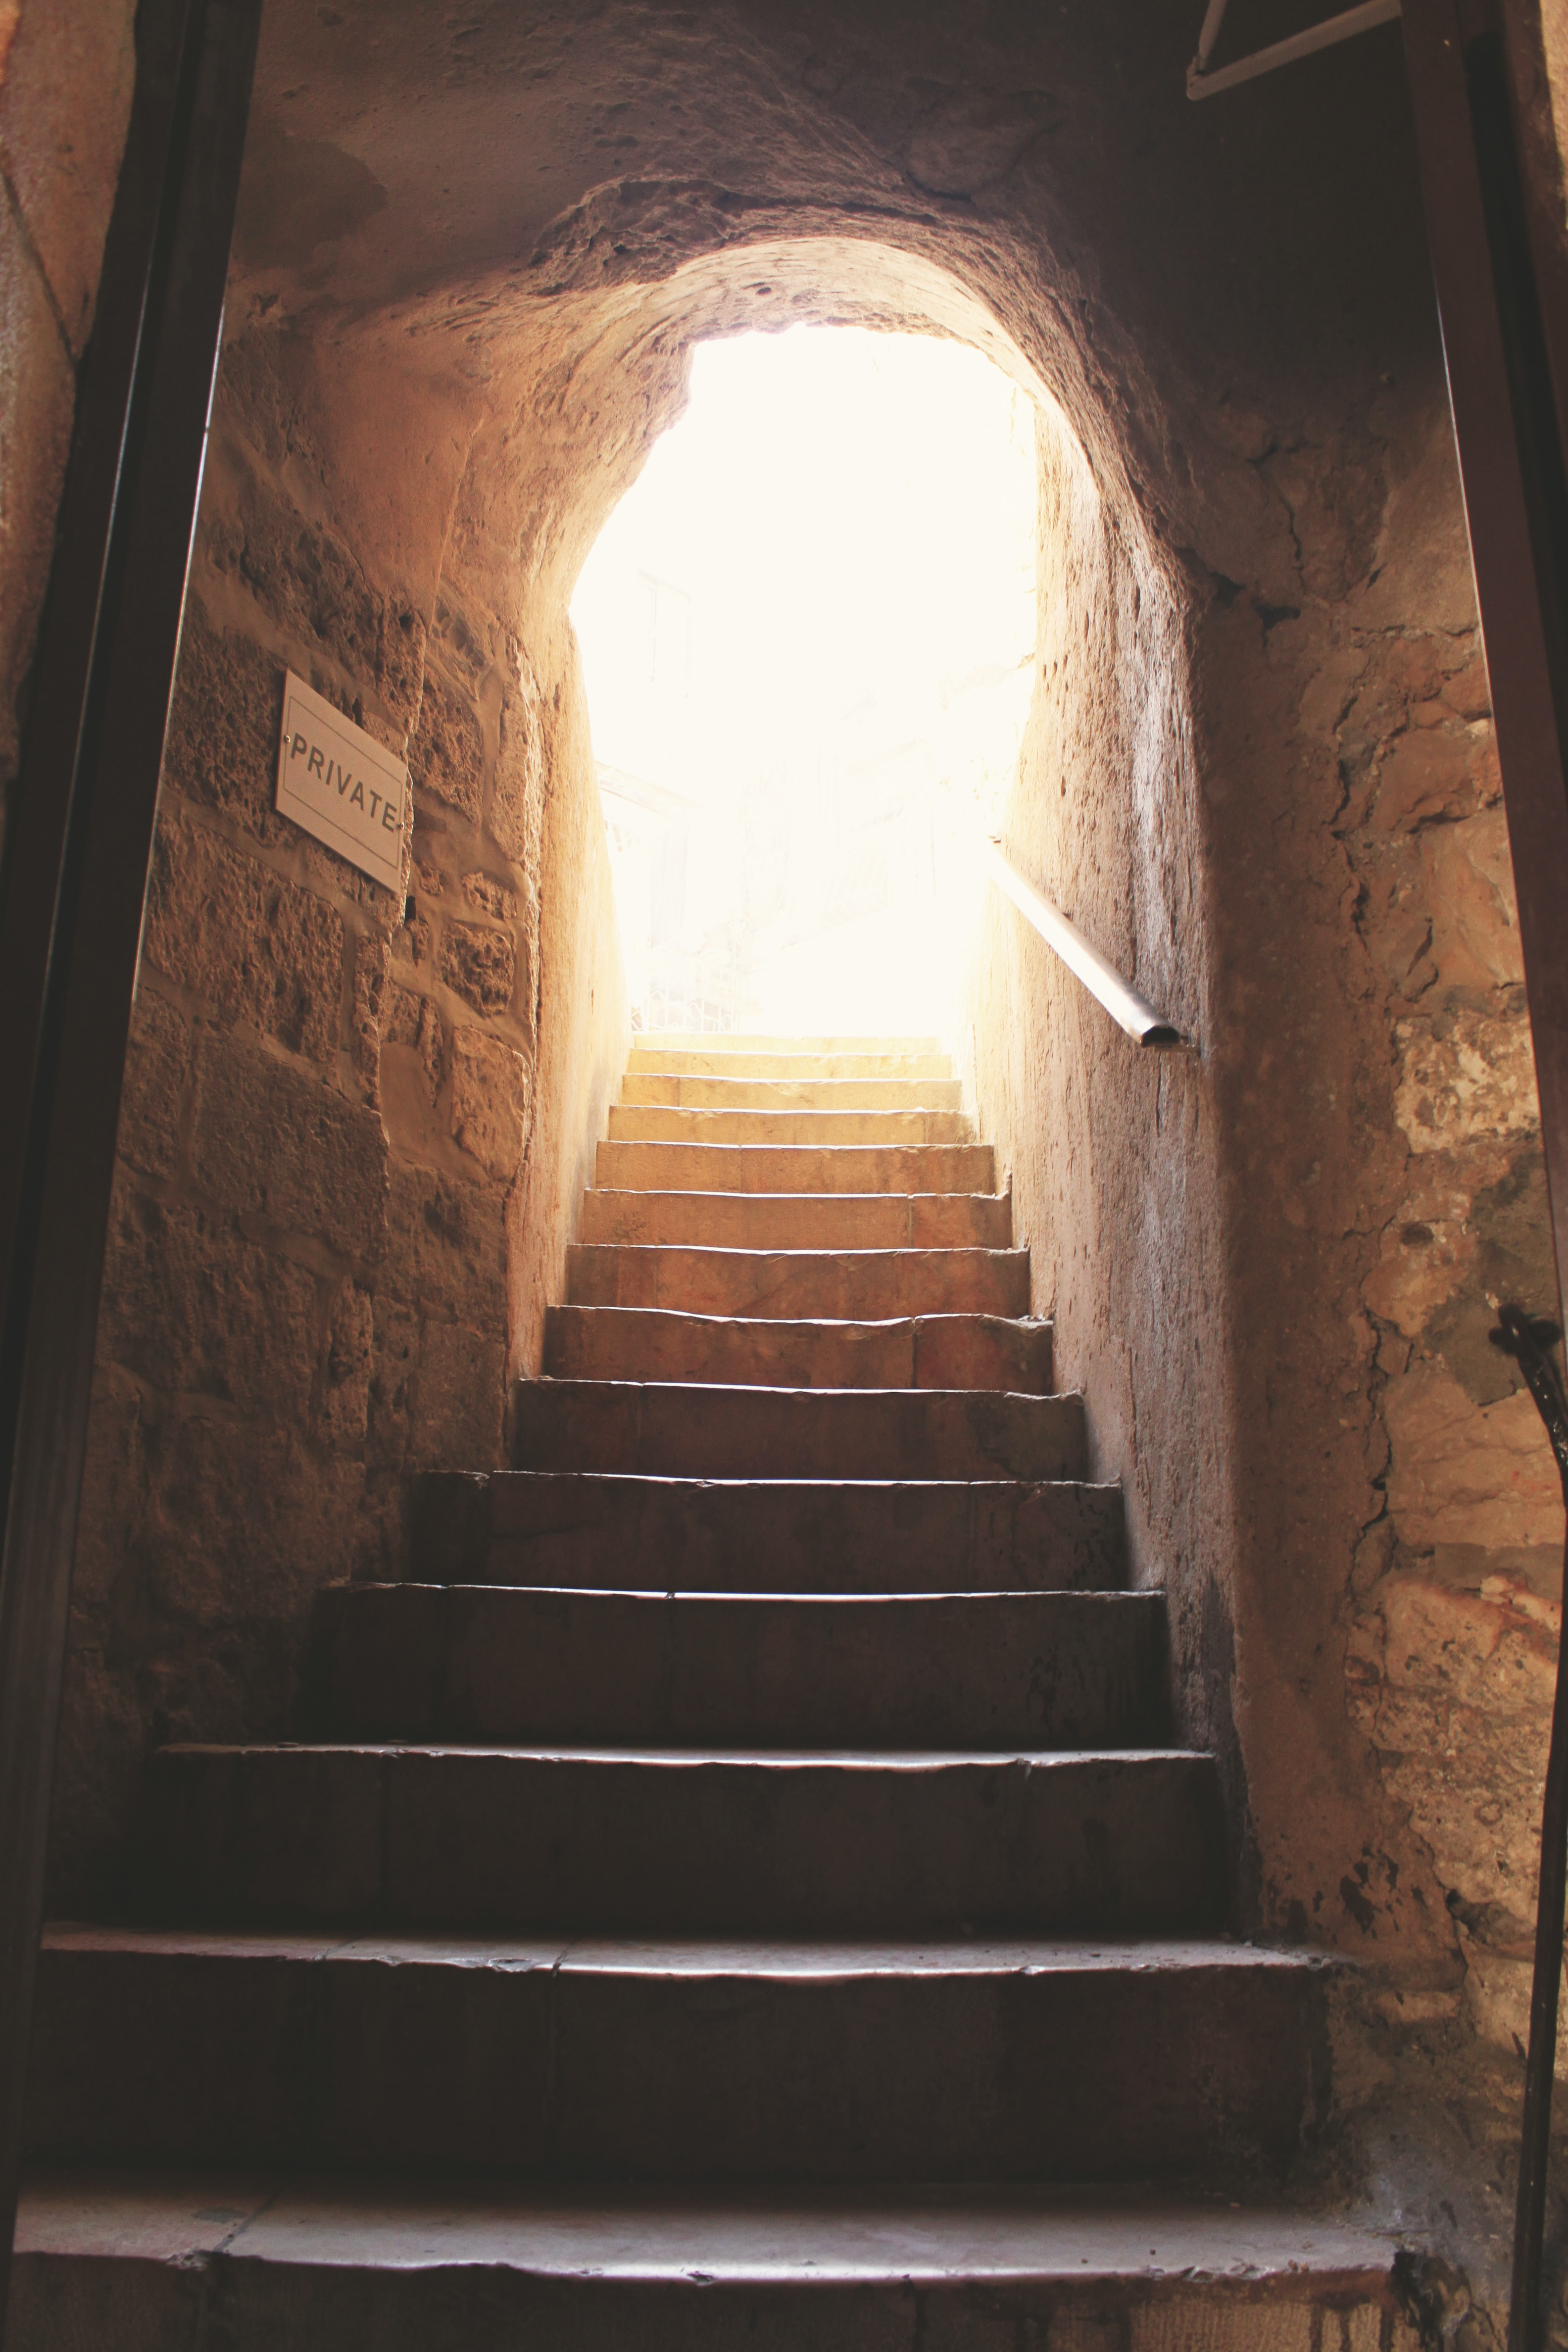 A staircase leading outside.